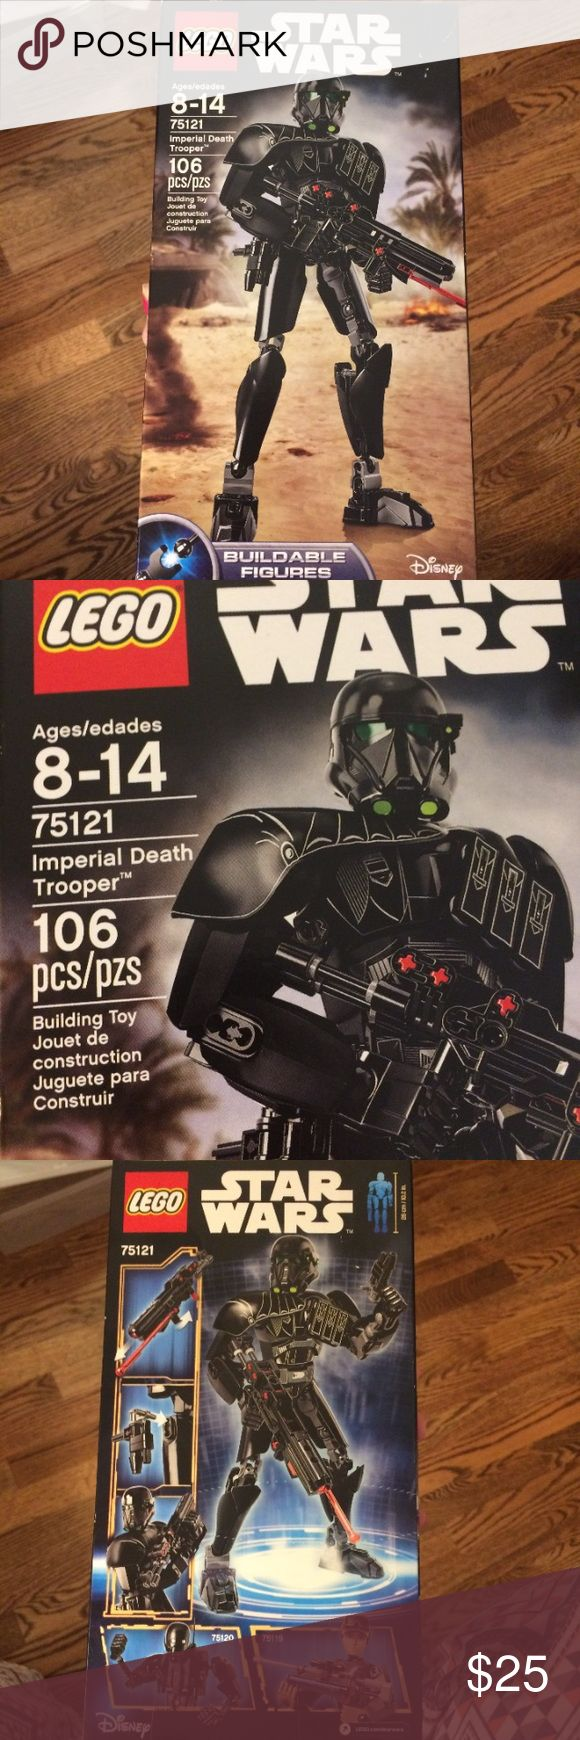 Legos NIB Star Wars action figurine Brand new in box, lego Star Wars imperial death trooper buildable figurine, 106 pieces. Finished height is 26cm/10.2inches. Love! Lego Other